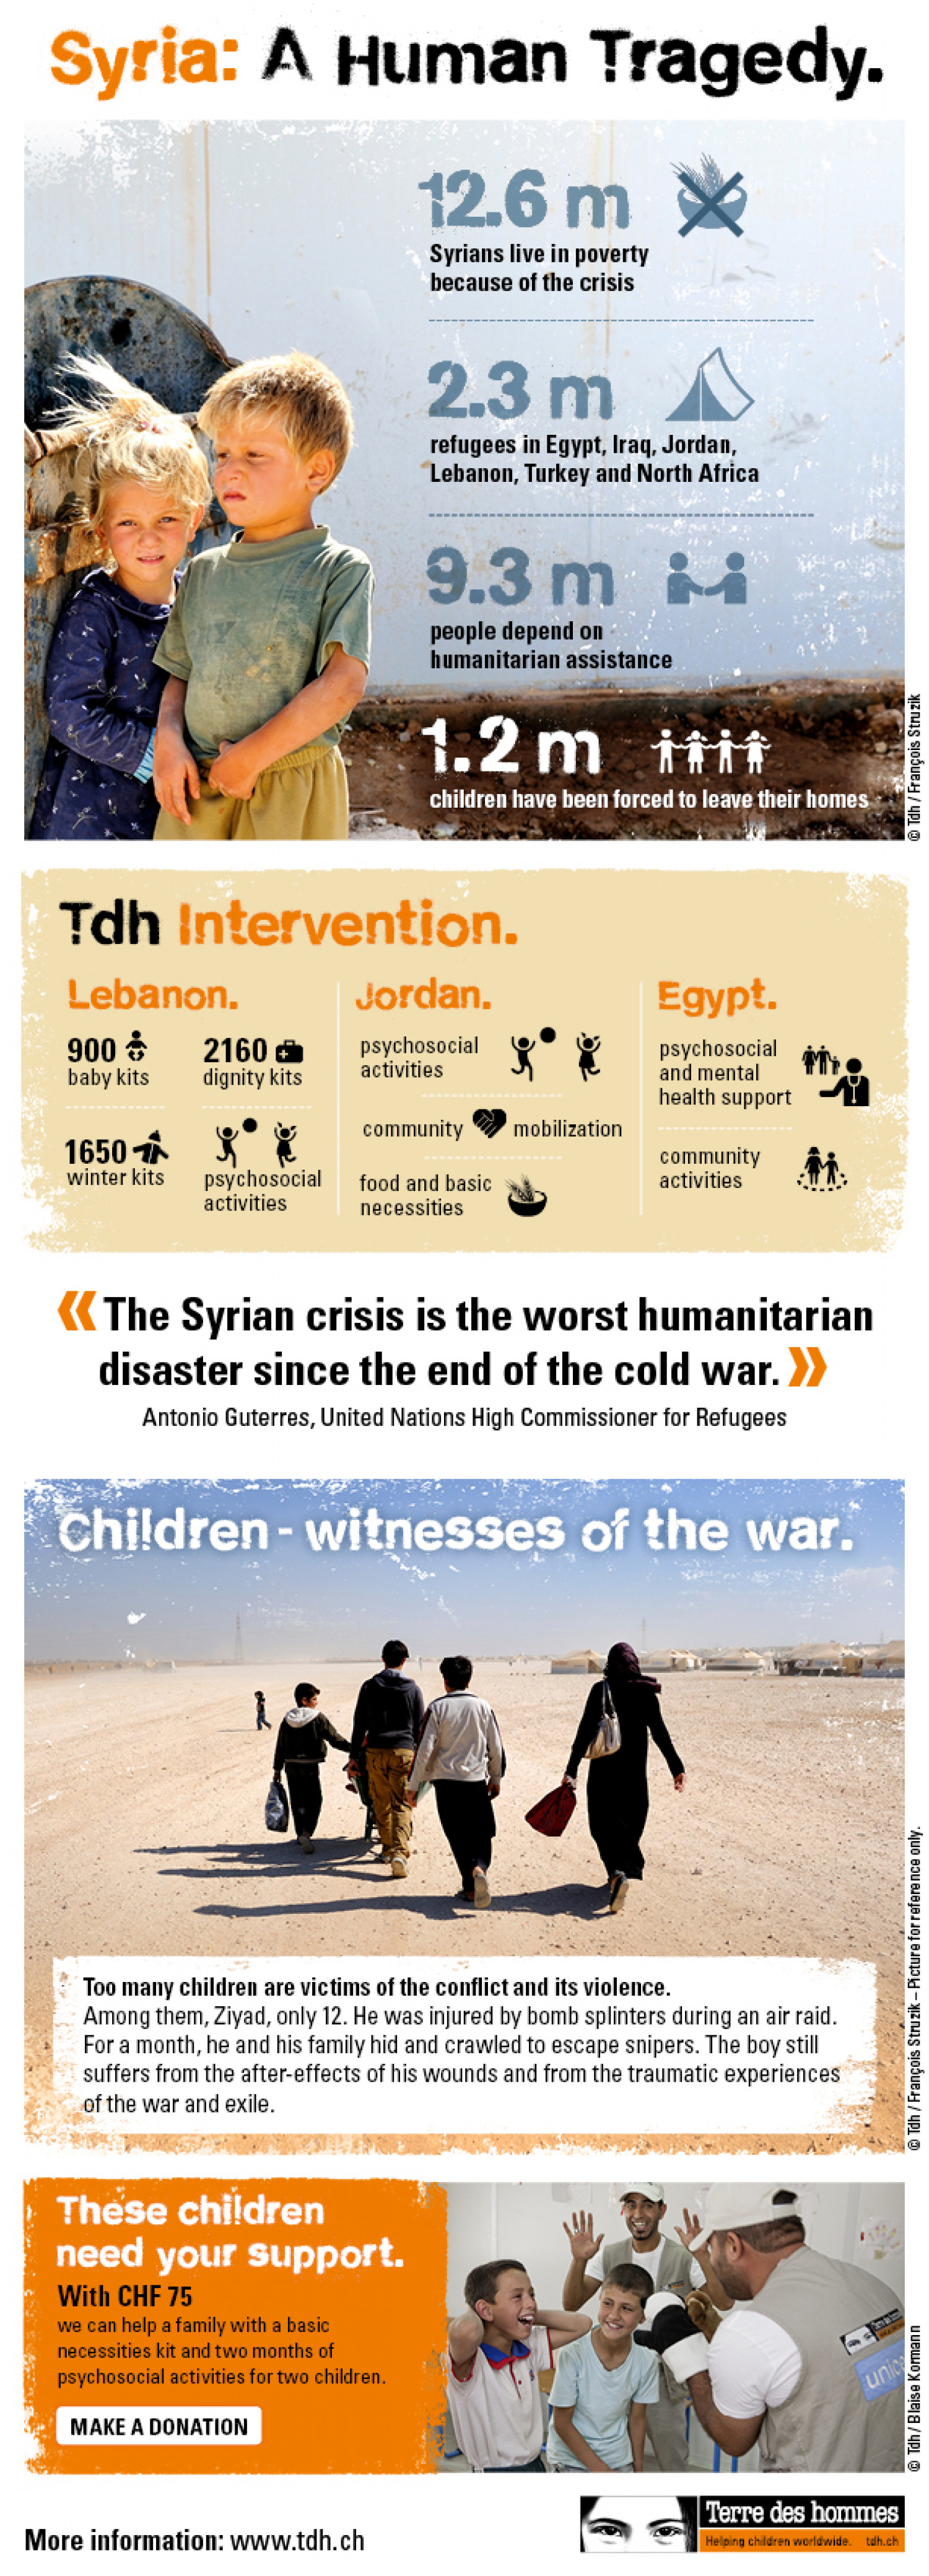 Syria: A Human Tragedy Infographic